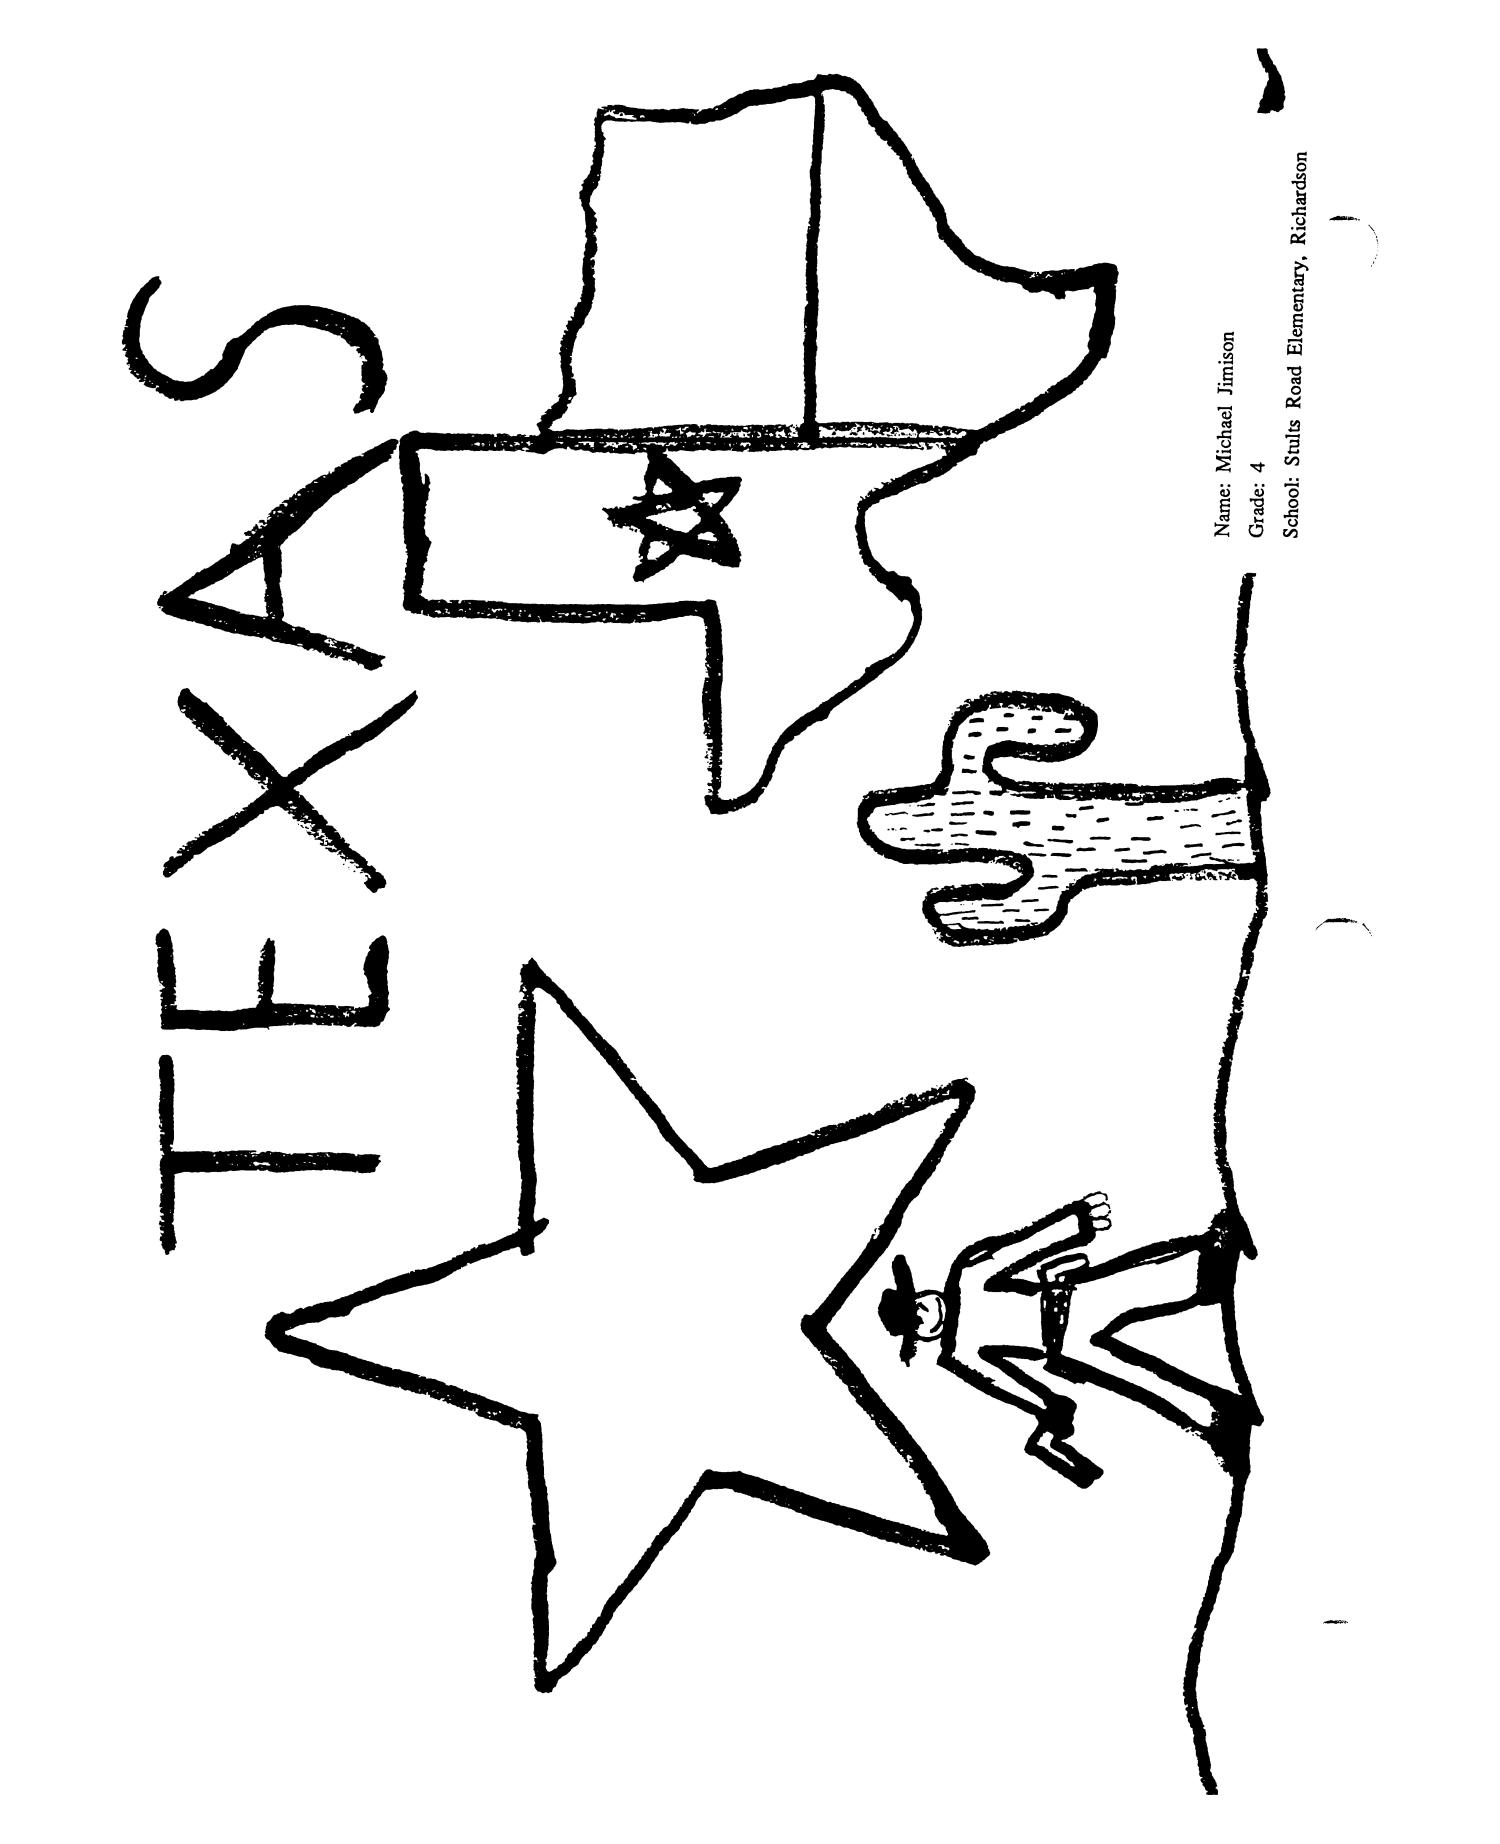 Texas Register, Volume 15, Number 4, Pages 145-239, January 12, 1990                                                                                                      147